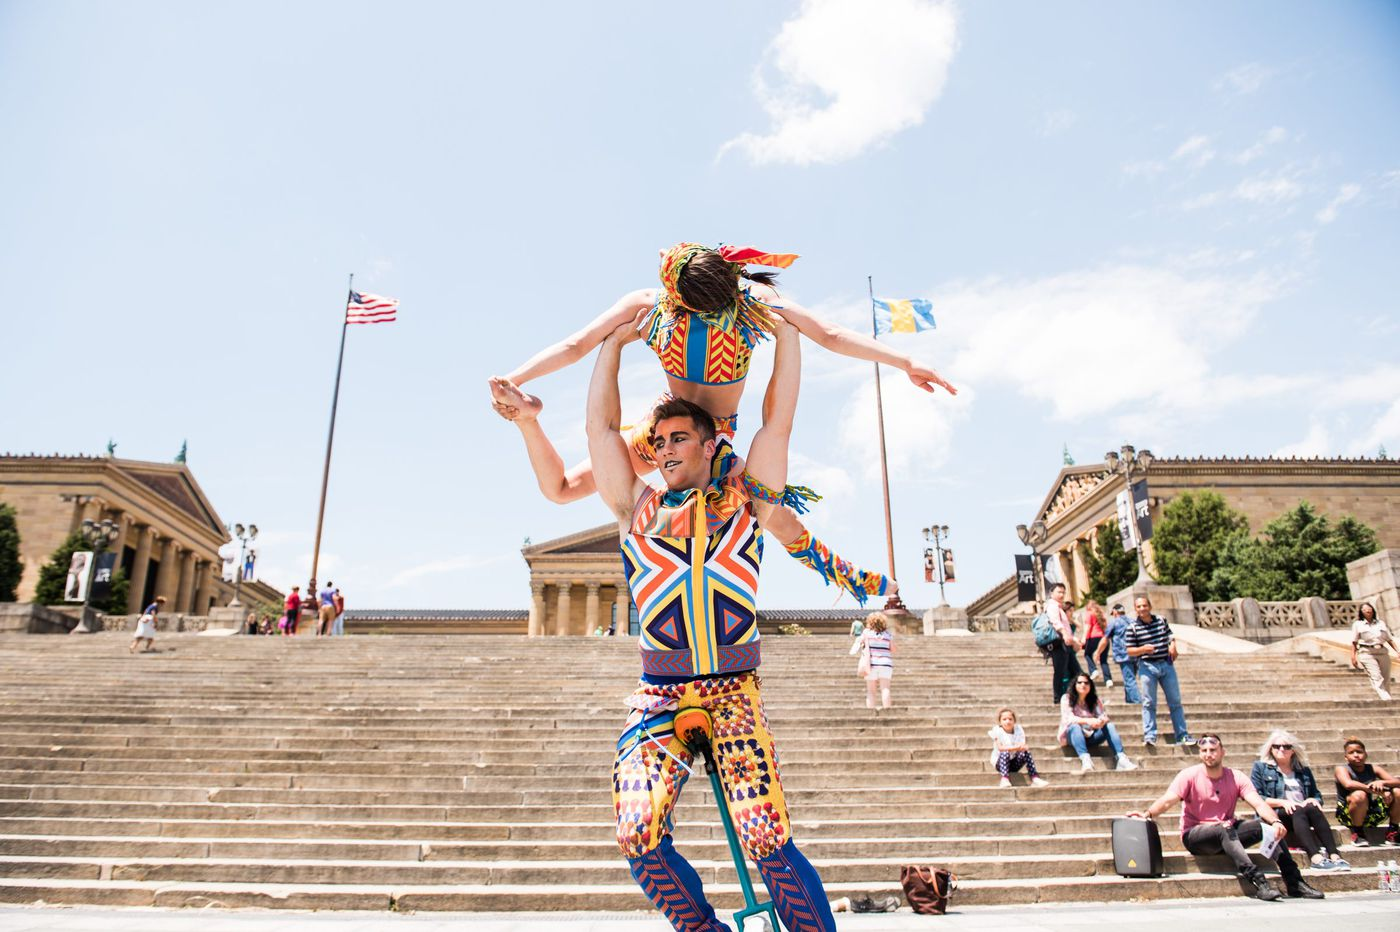 Photos Cirque Du Soleil Unicycle Duo Performs Free Shows At Iconic Spots Across Philadelphia